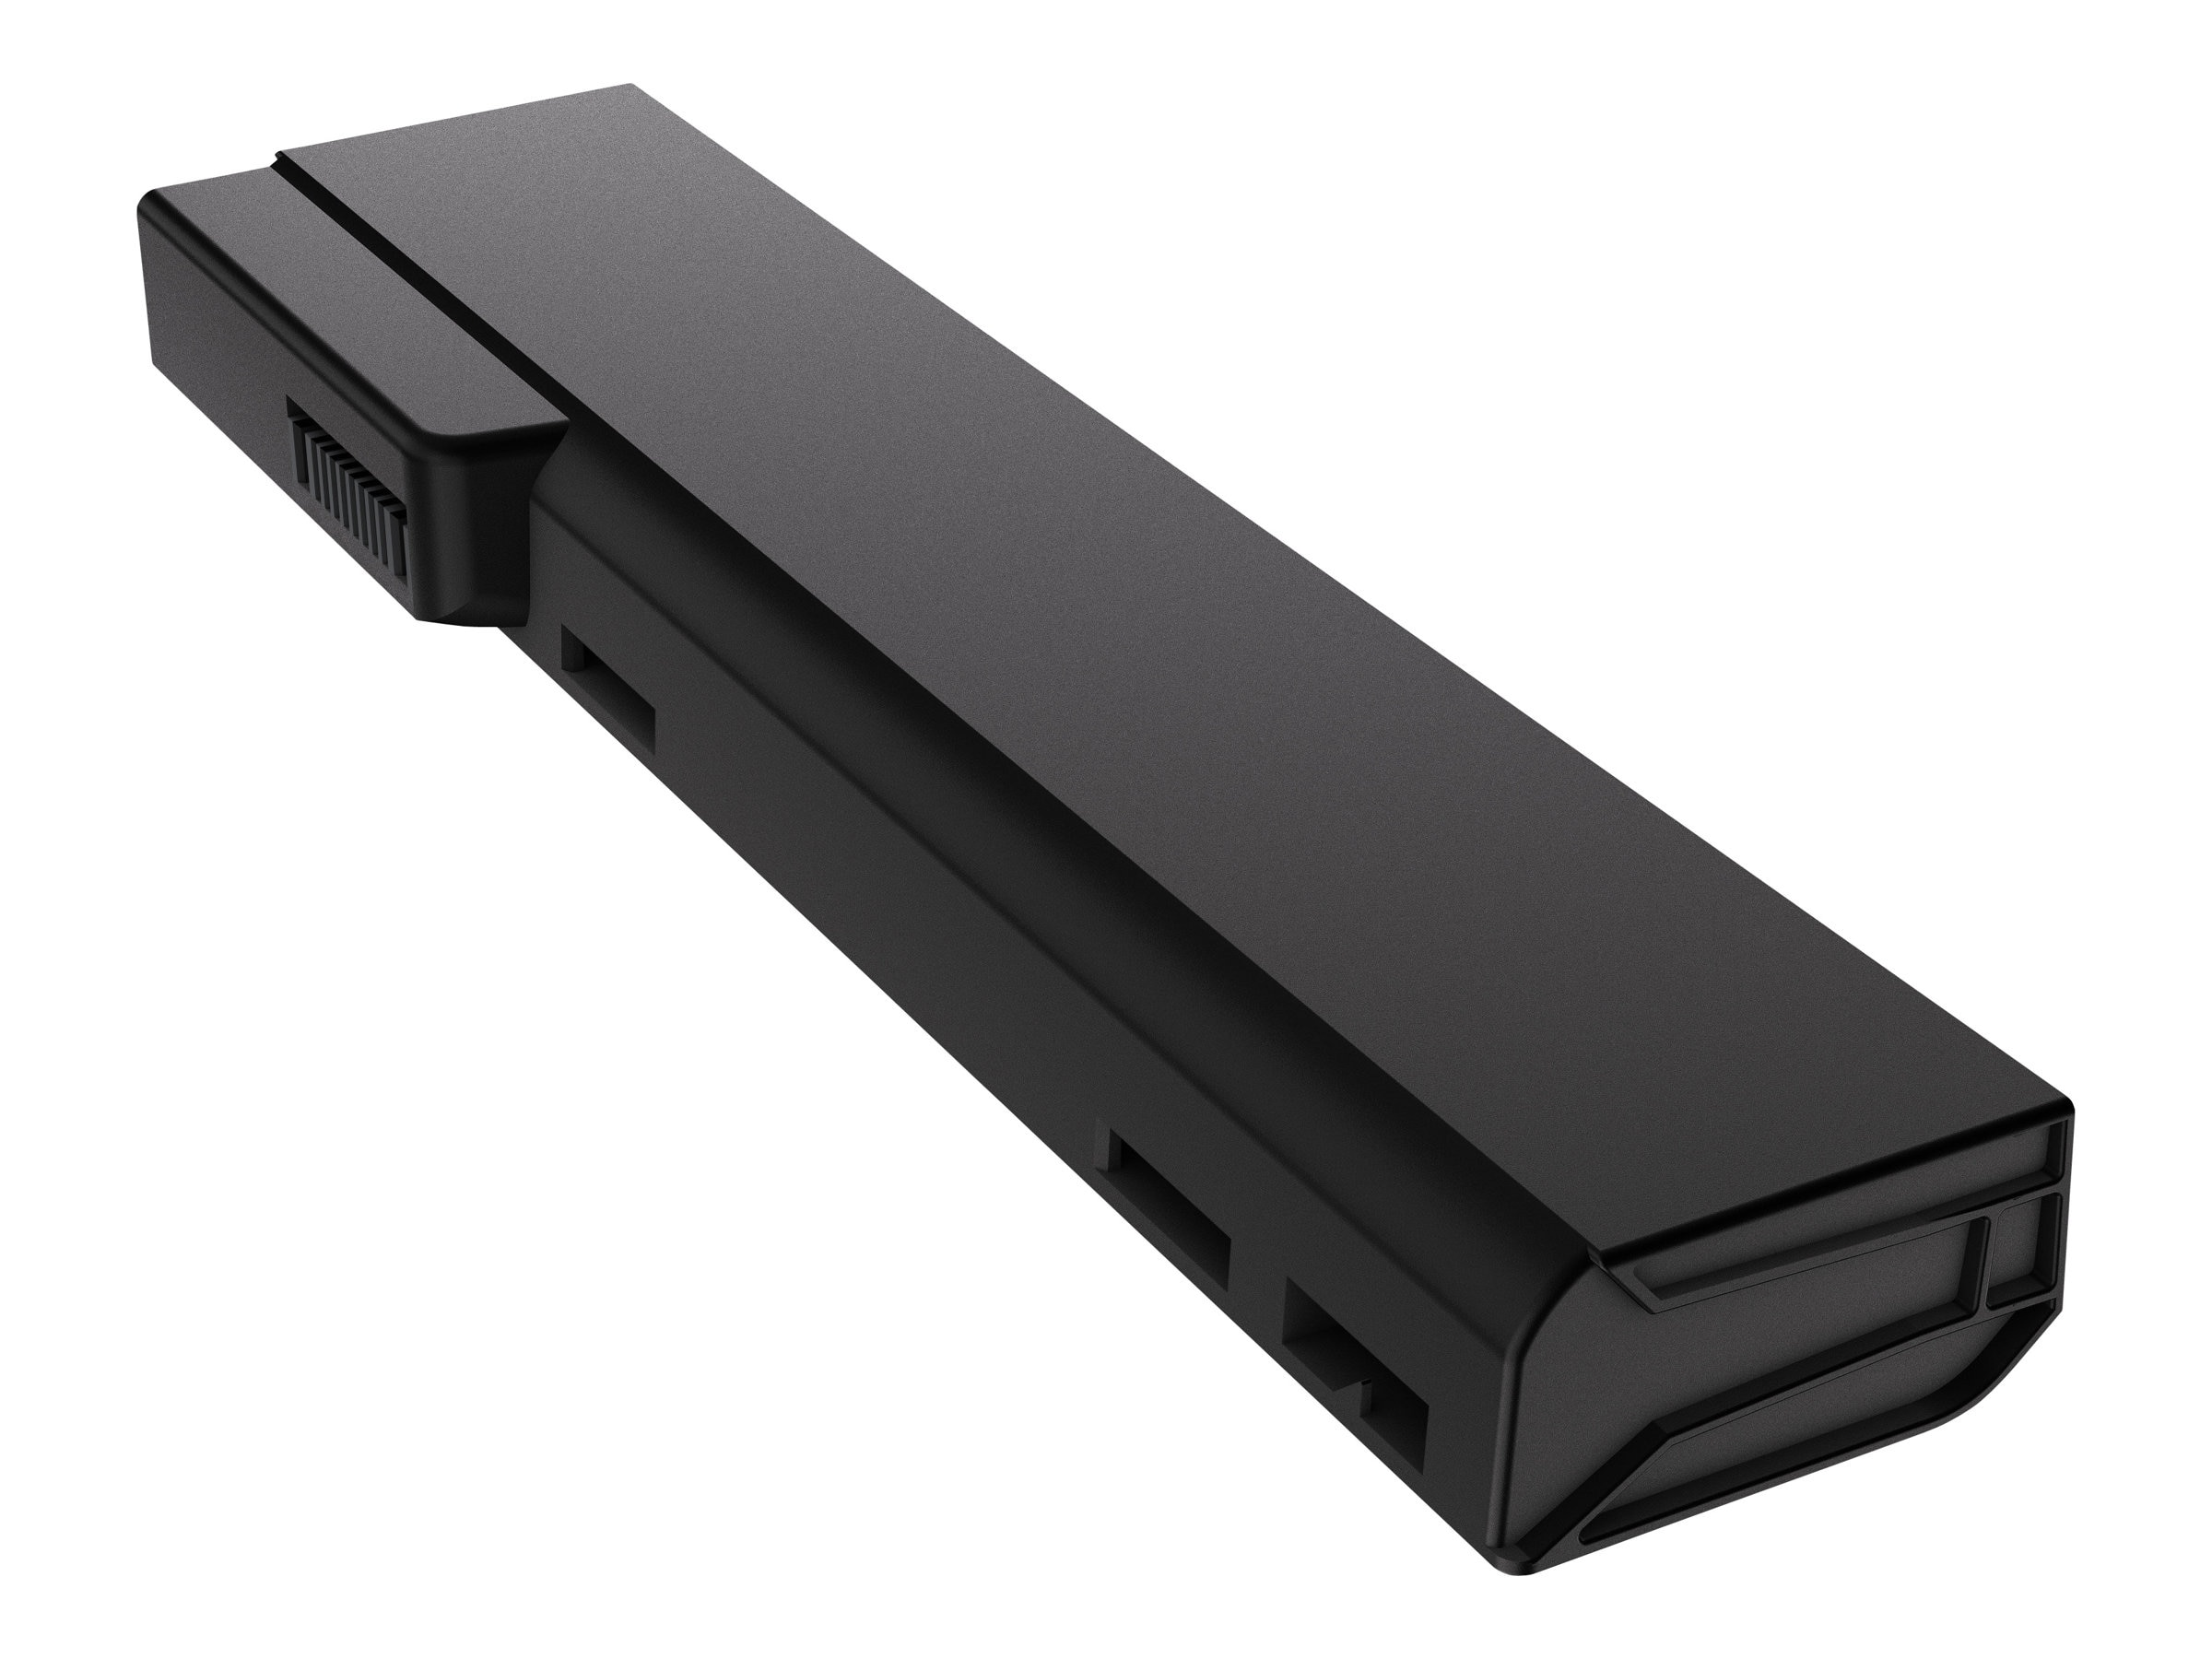 HP CC06XL Long Life Notebook Battery, QK642AA